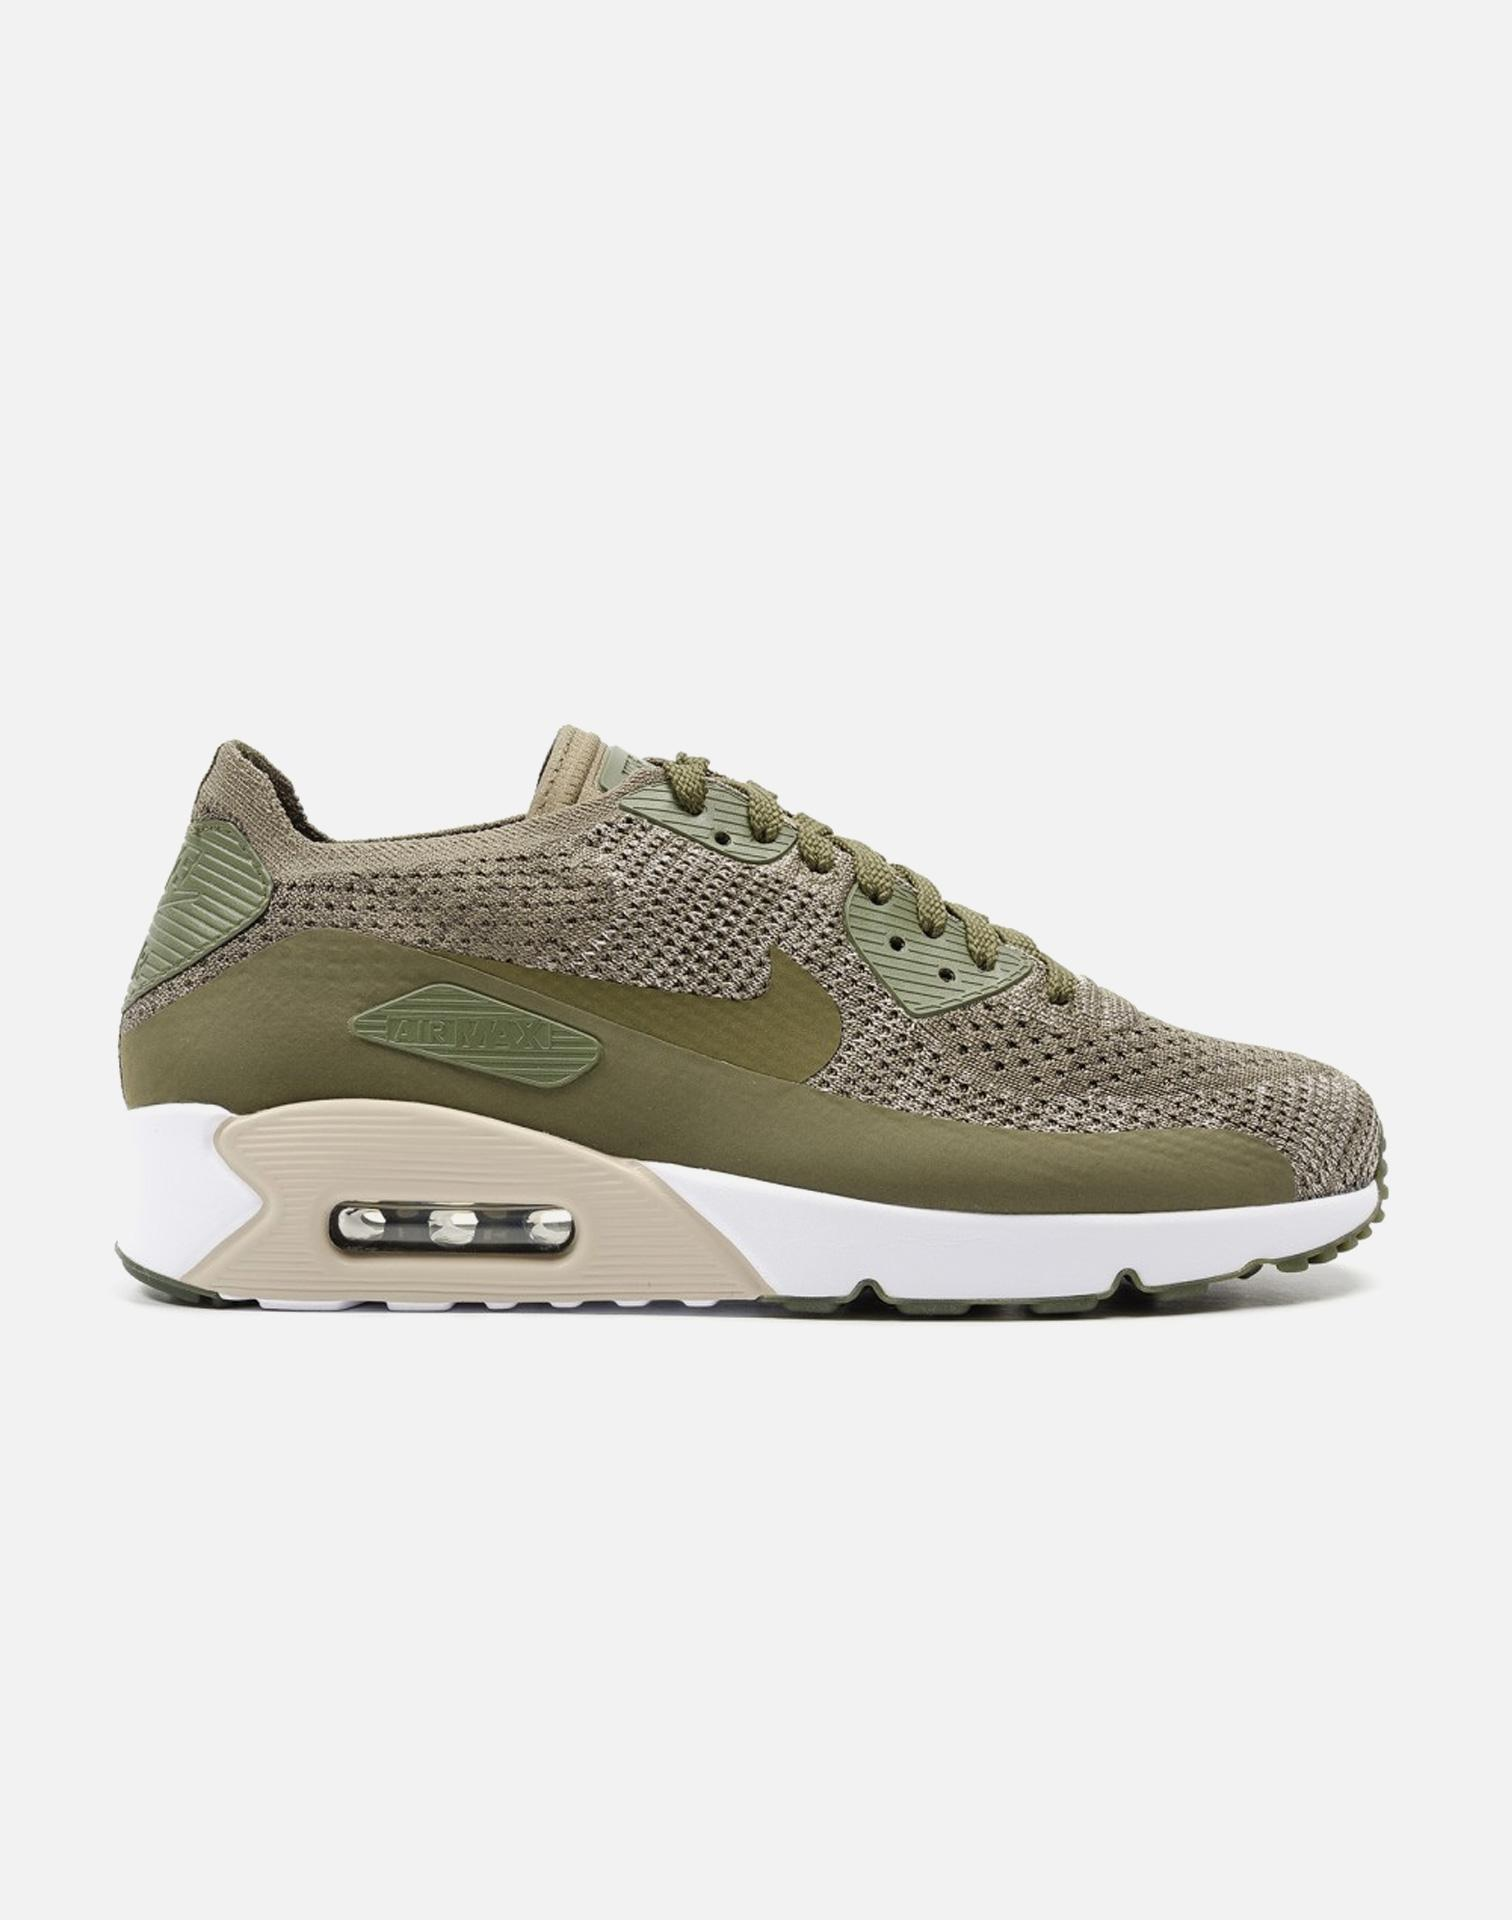 9bd99205fe82 Lyst - Nike Air Max 90 Ultra 2.0 Flyknit in Green for Men